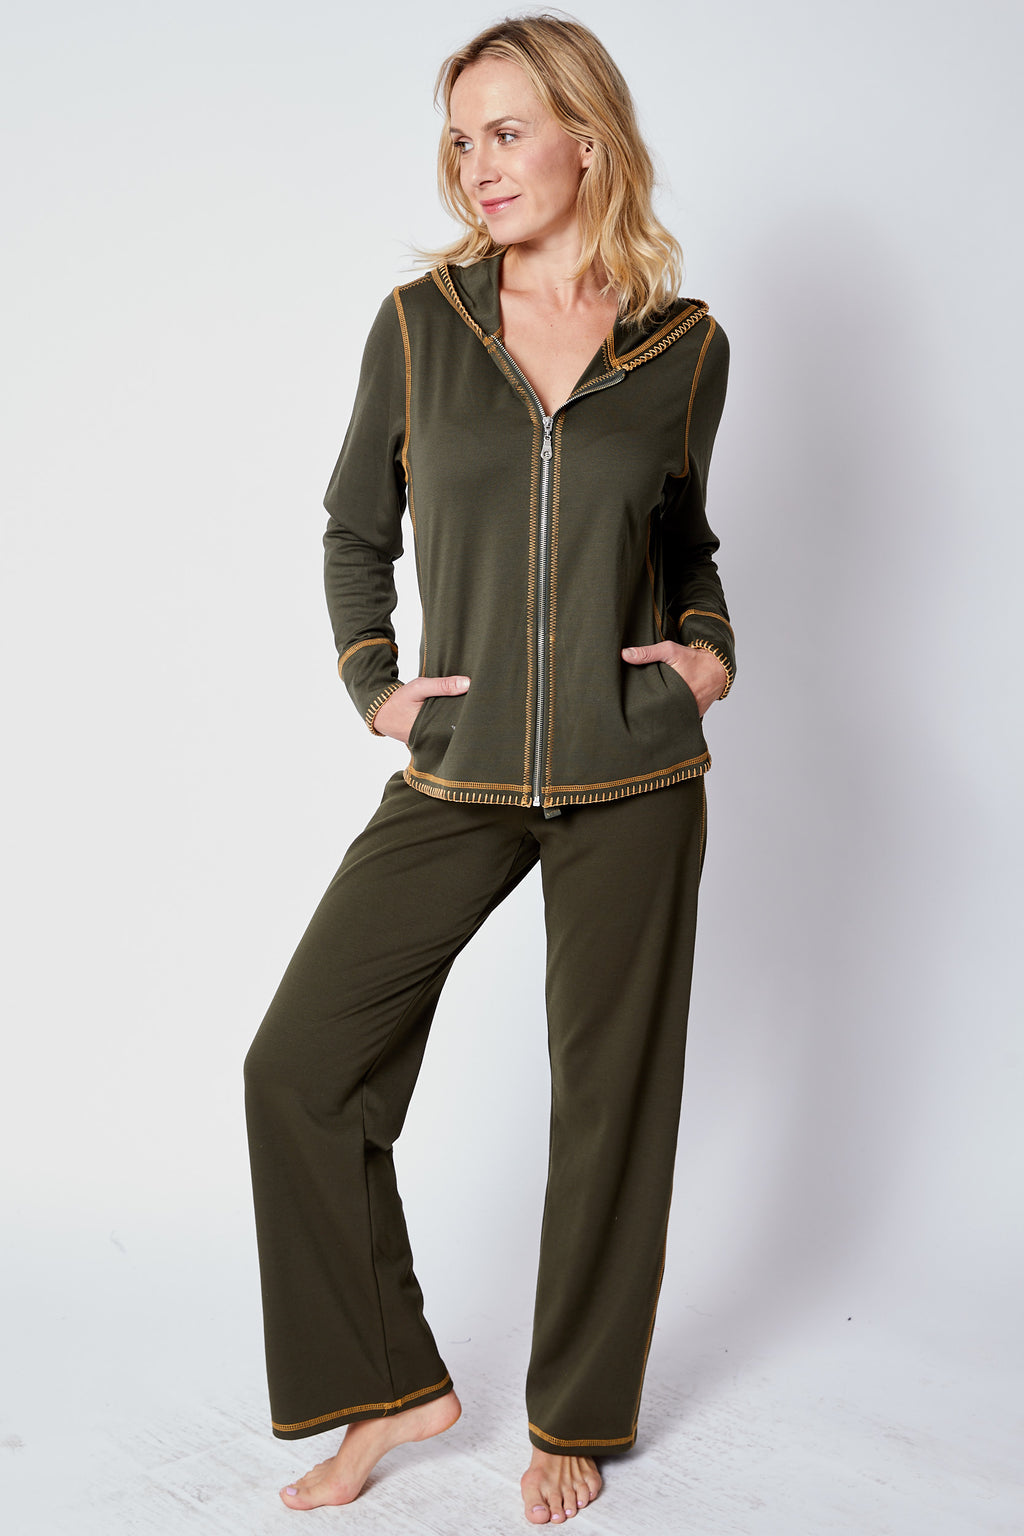 Olive Sweats - Jacqueline B Clothing